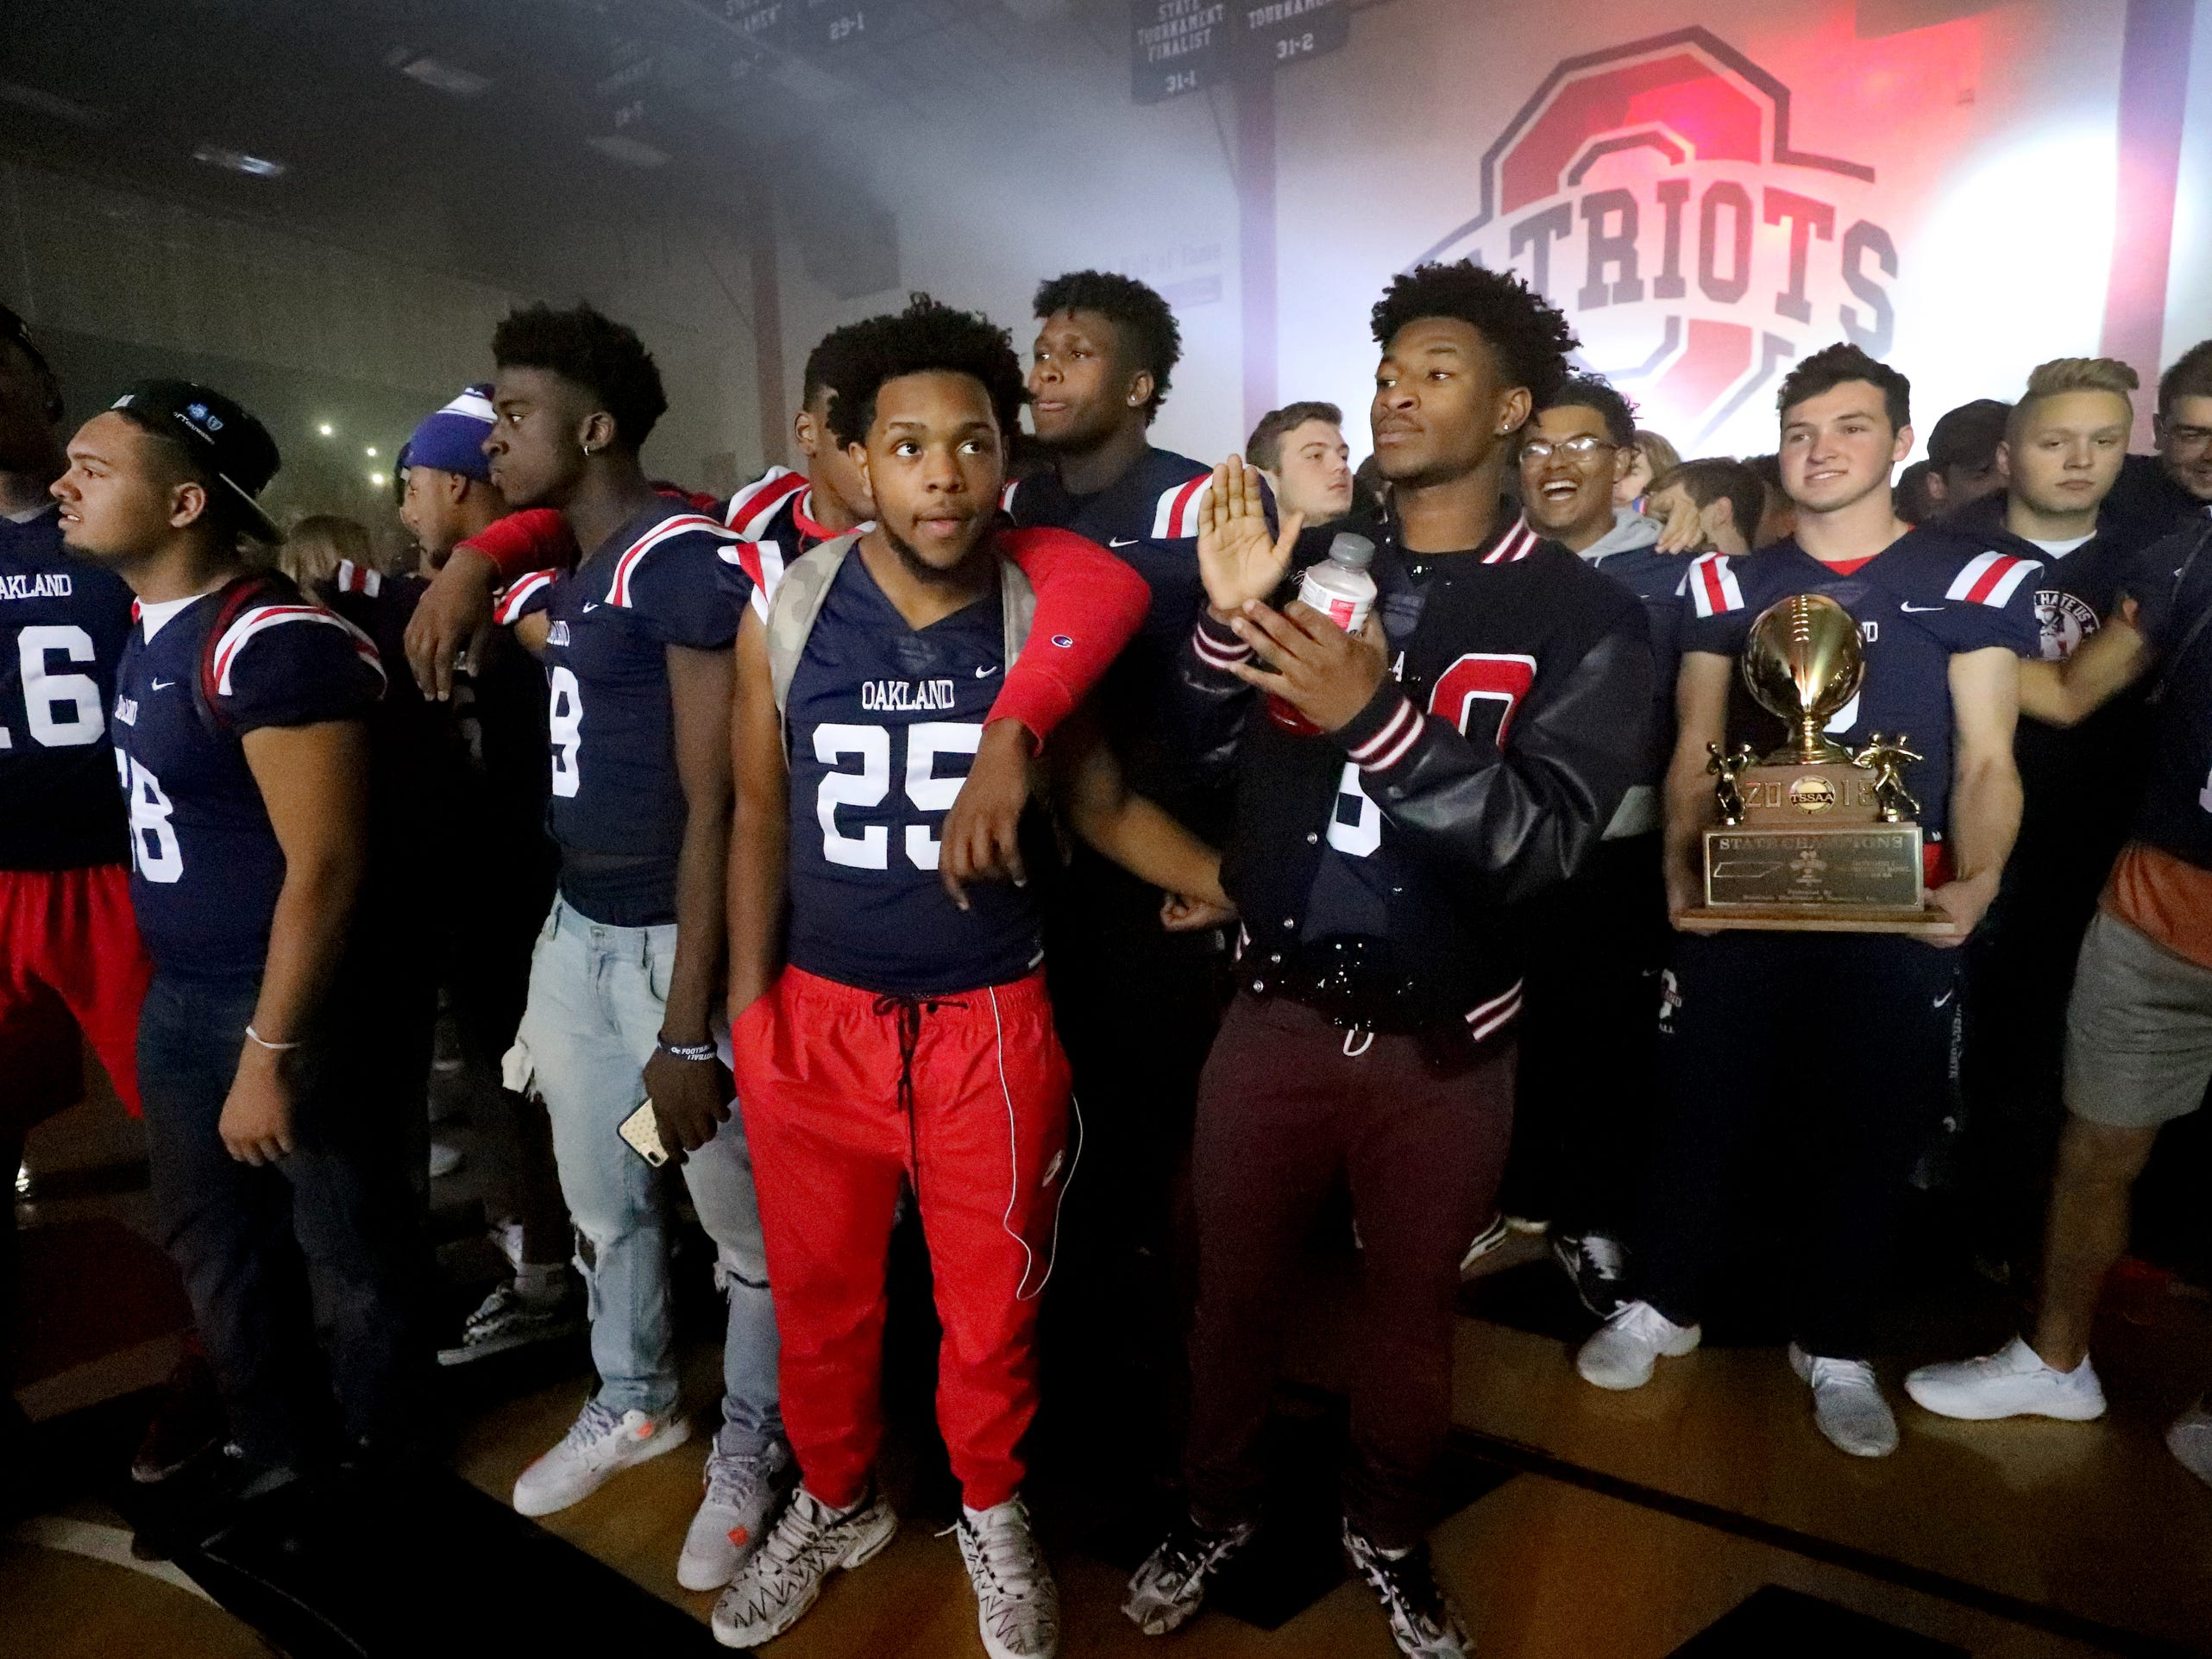 Oakland High School football players celebrate during a pep rally, on Monday, Dec. 3, 2018 at the school after the football team won the 6A State Championship BlueCross Bowl game against Westhaven on Thursday.